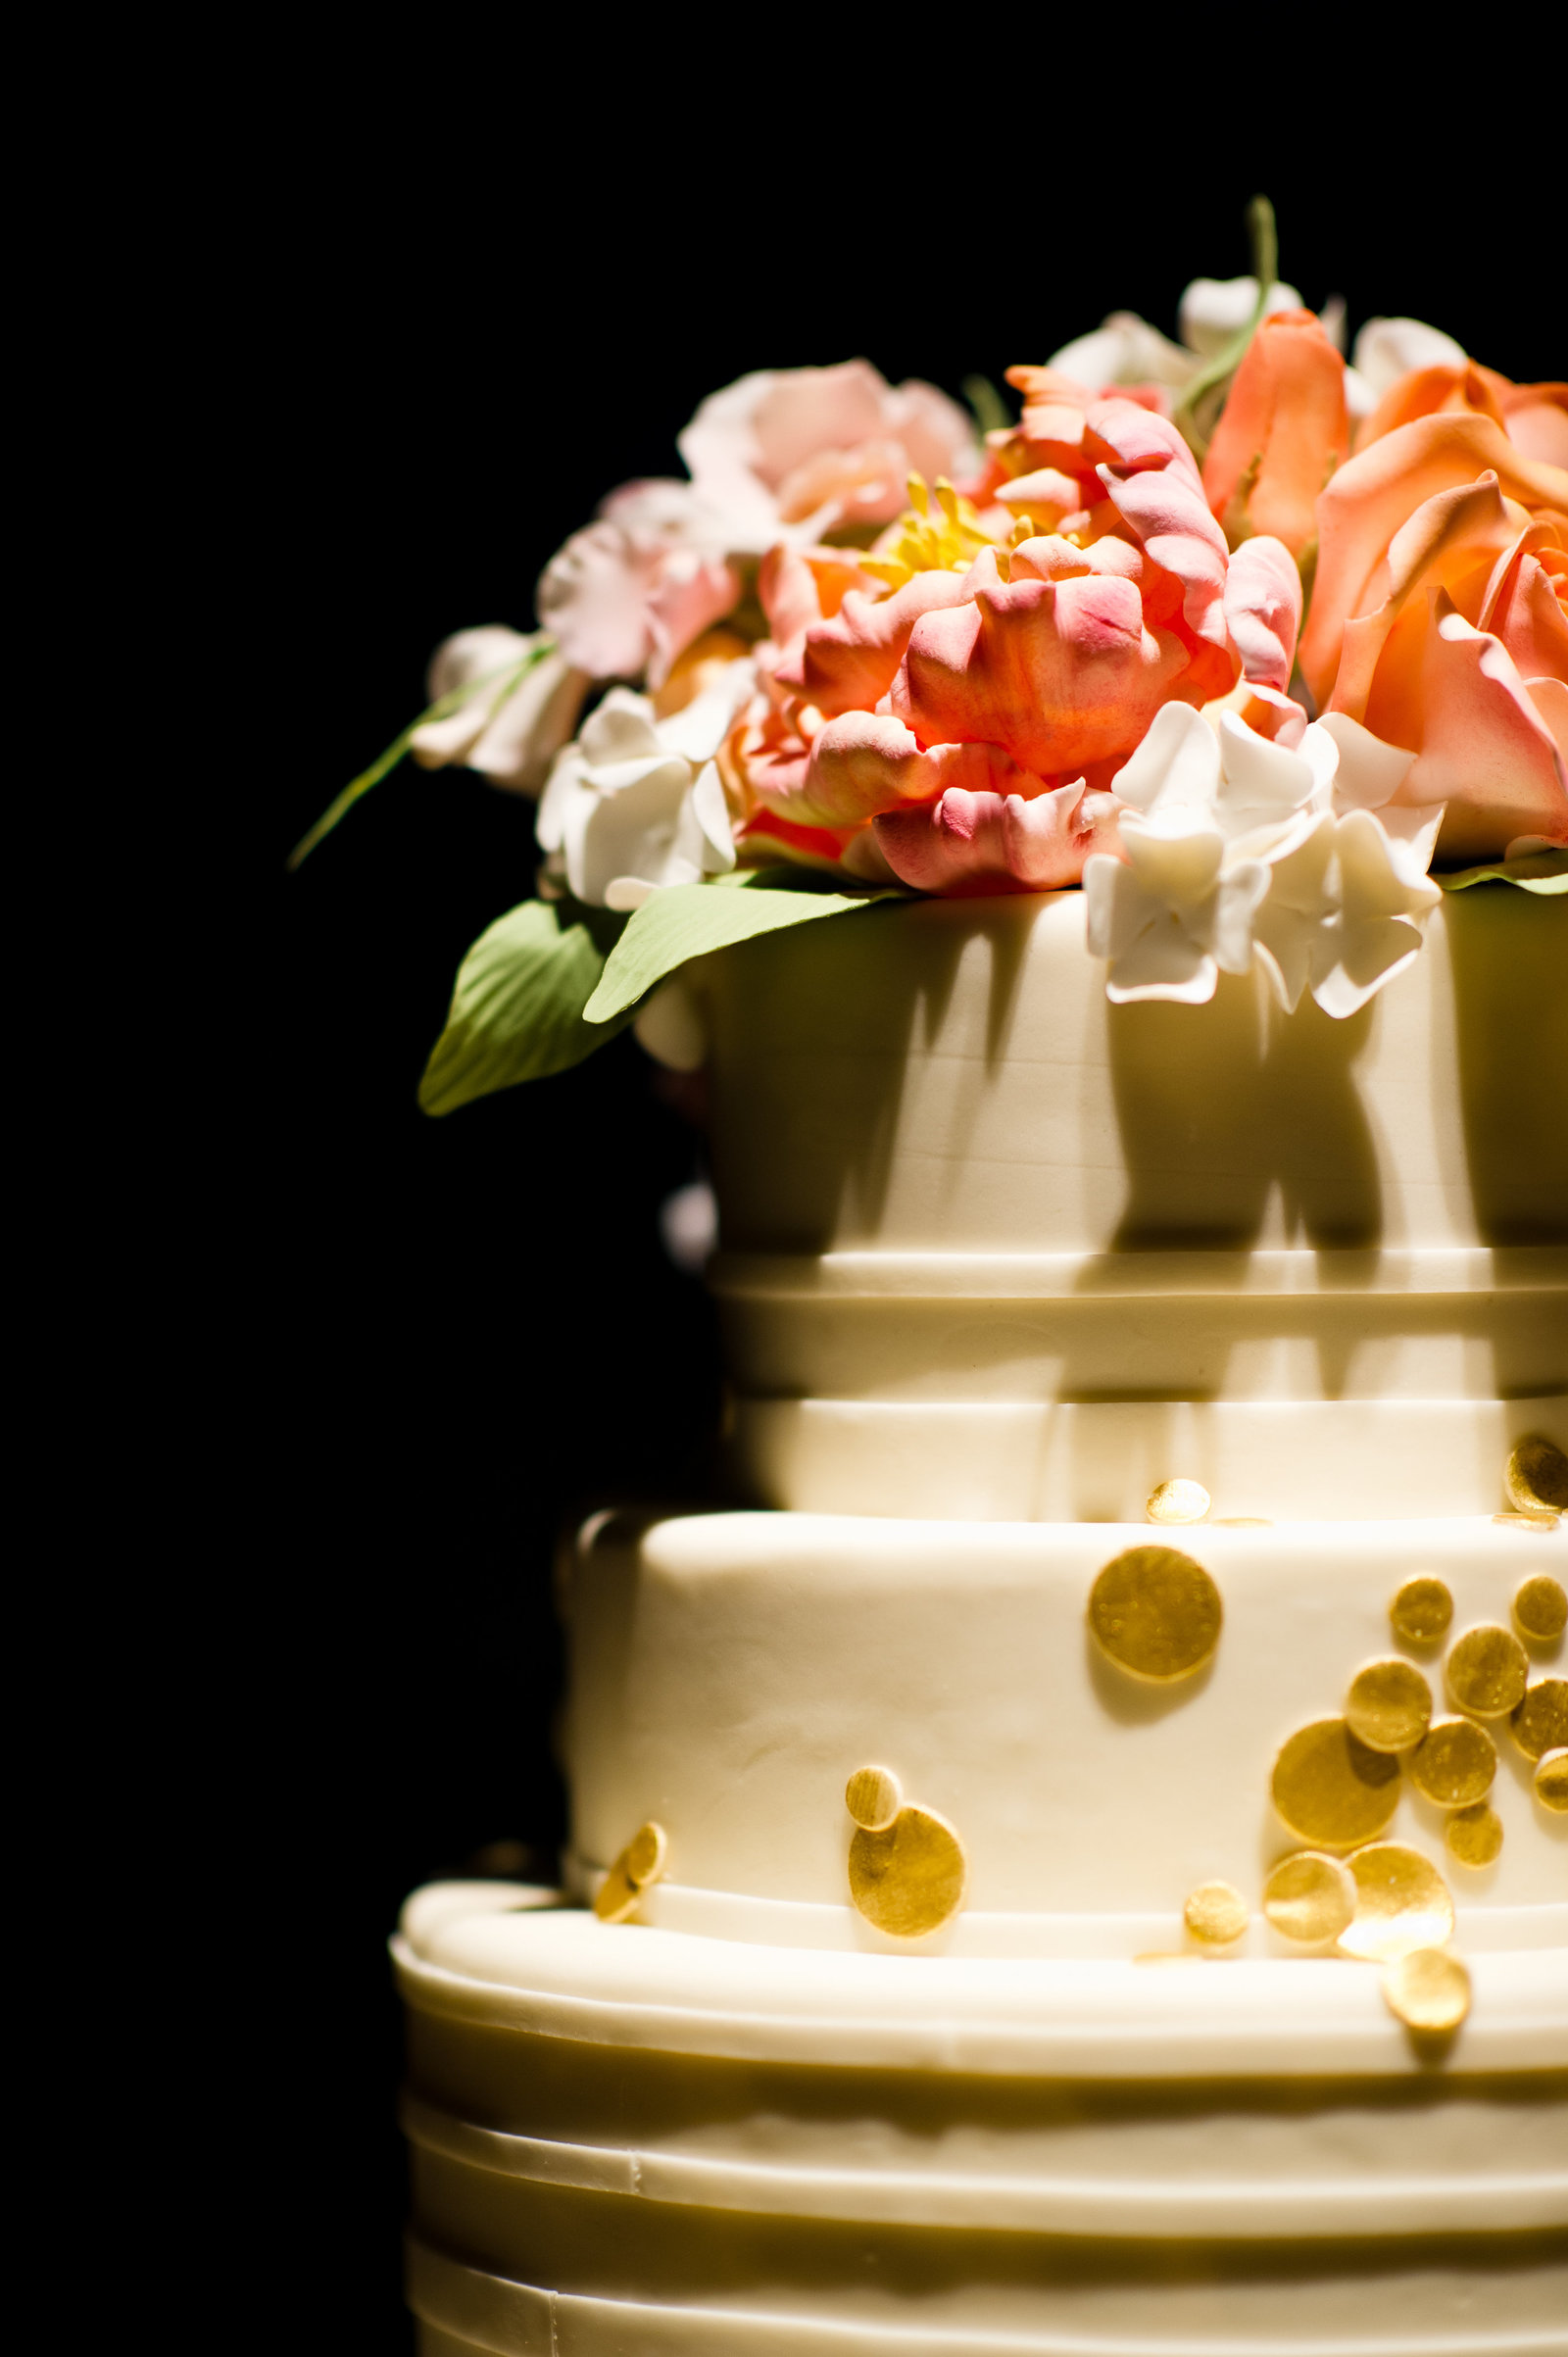 Cake design with sugar flowers by The Cake Studio of Ocean Studio